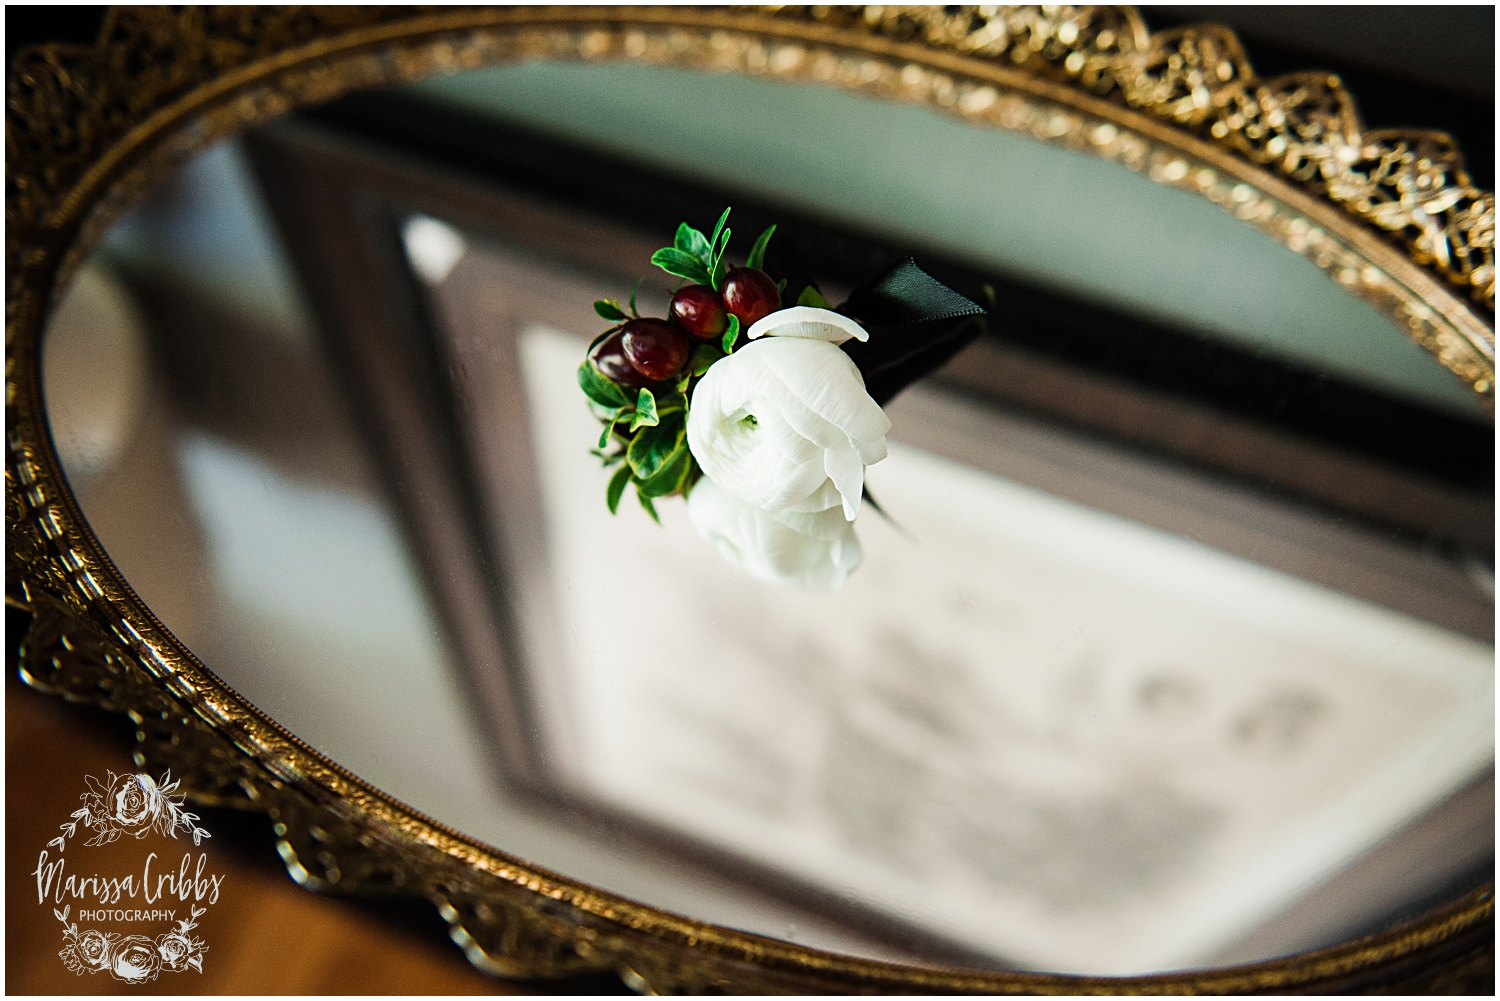 JESSICA & MARK MARRIED SNEAK PEEKS | 1890 EVENT SPACE WEDDING | MARISSA CRIBBS PHOTOGRAPHY_7800.jpg